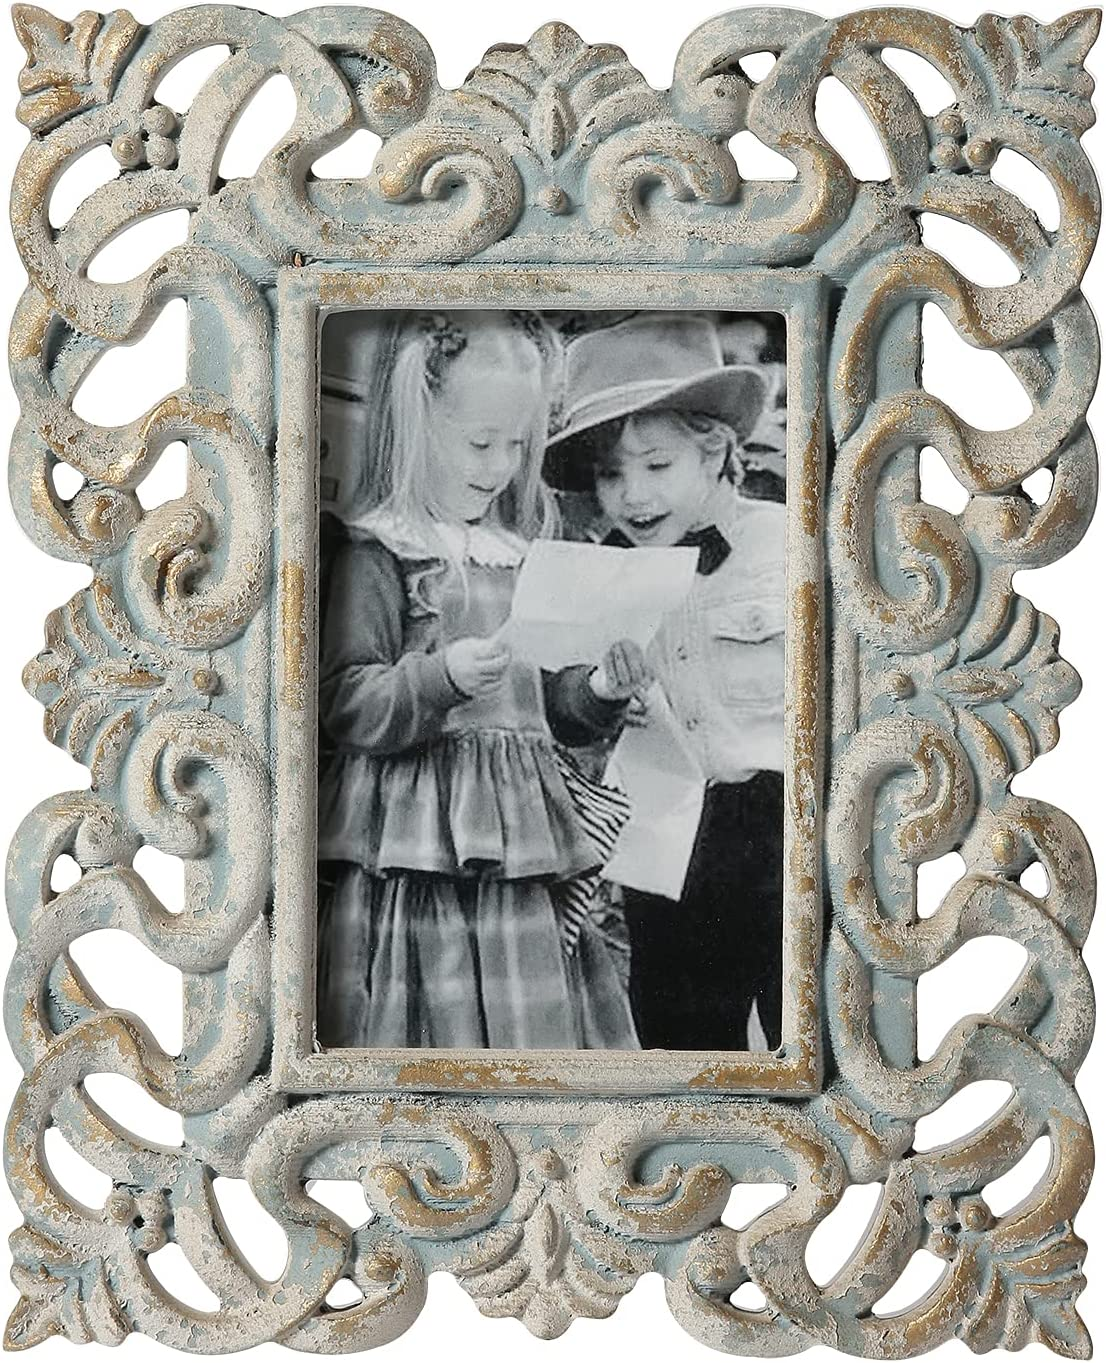 Vintage Picture Frames 4 x 6, Handmade Distressed Baroque Antique Photo Frame with Glass for Tabletop Display, Home Bedroom Dresser Living Room Party Decorative